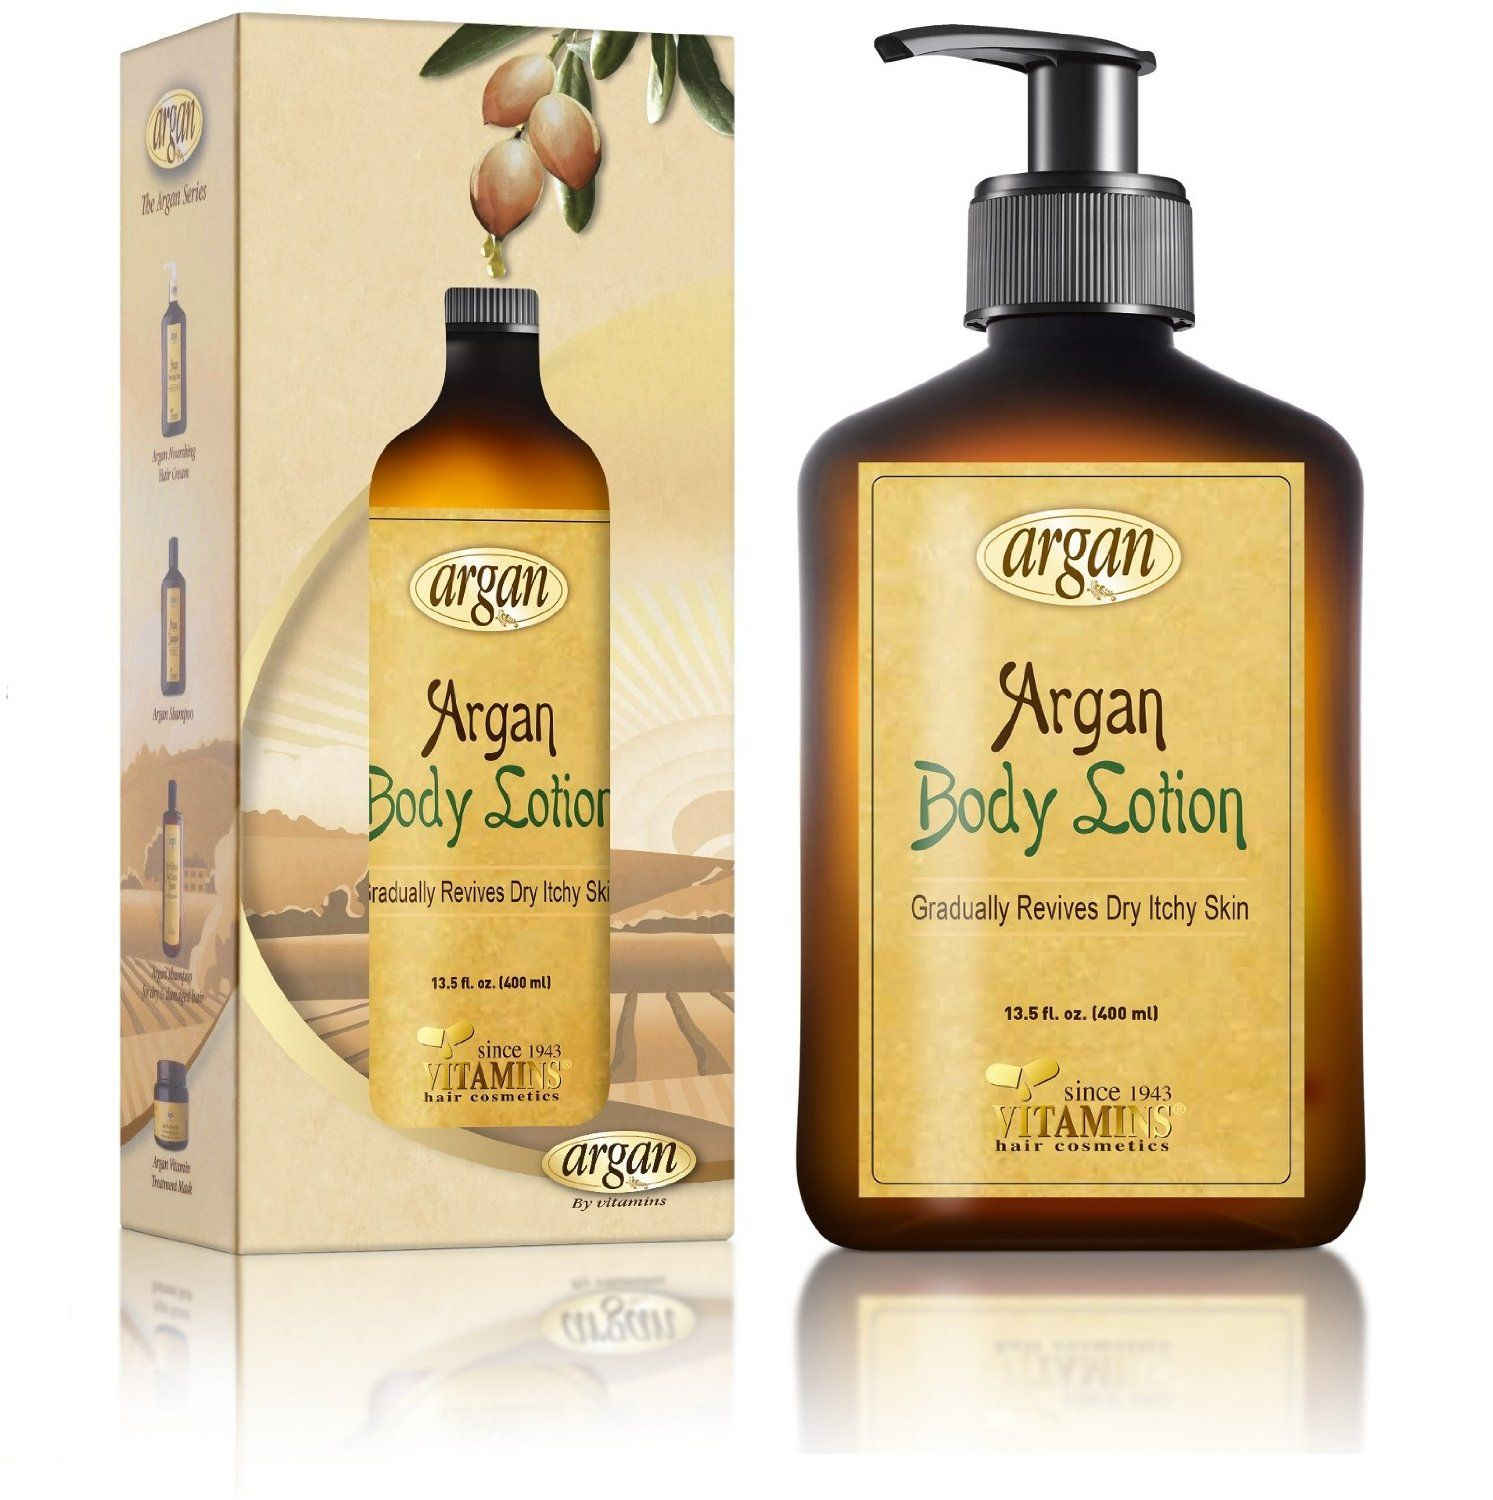 Body Lotion Dry Skin Moisturizer Exclusive Herbal Oils Complex Daily Moroccan Argan Oil Advanced Lotion For Dry Skin Dry Skin Body Lotion Skin Moisturizer